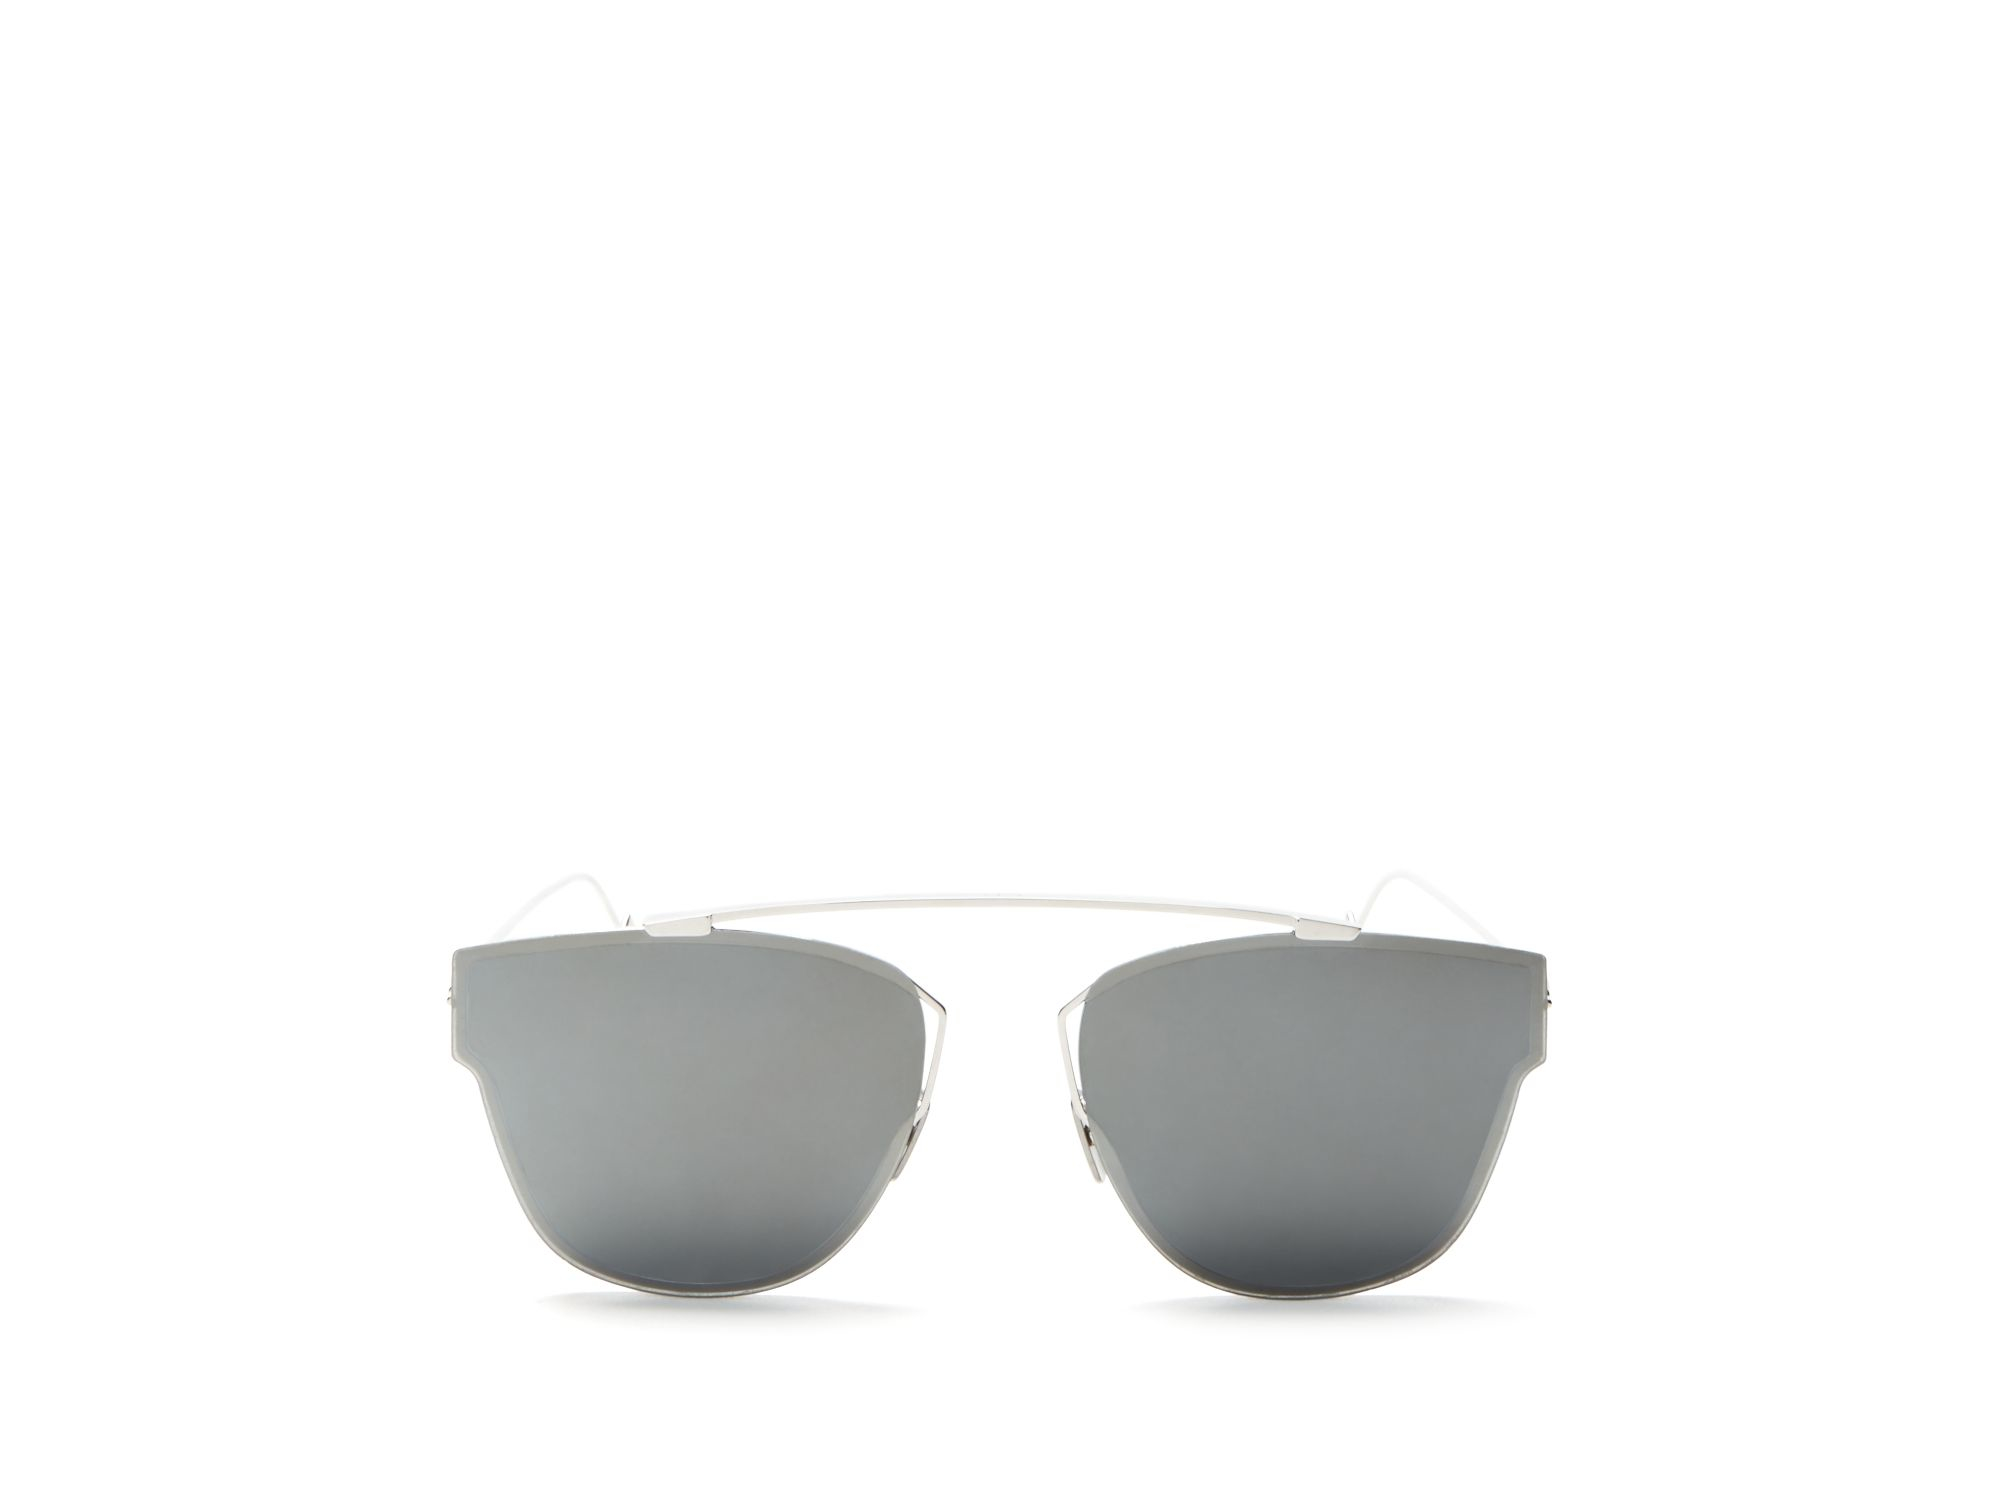 4fb65b10b90 Lyst - Dior Homme 0204s Sunglasses in Gray for Men